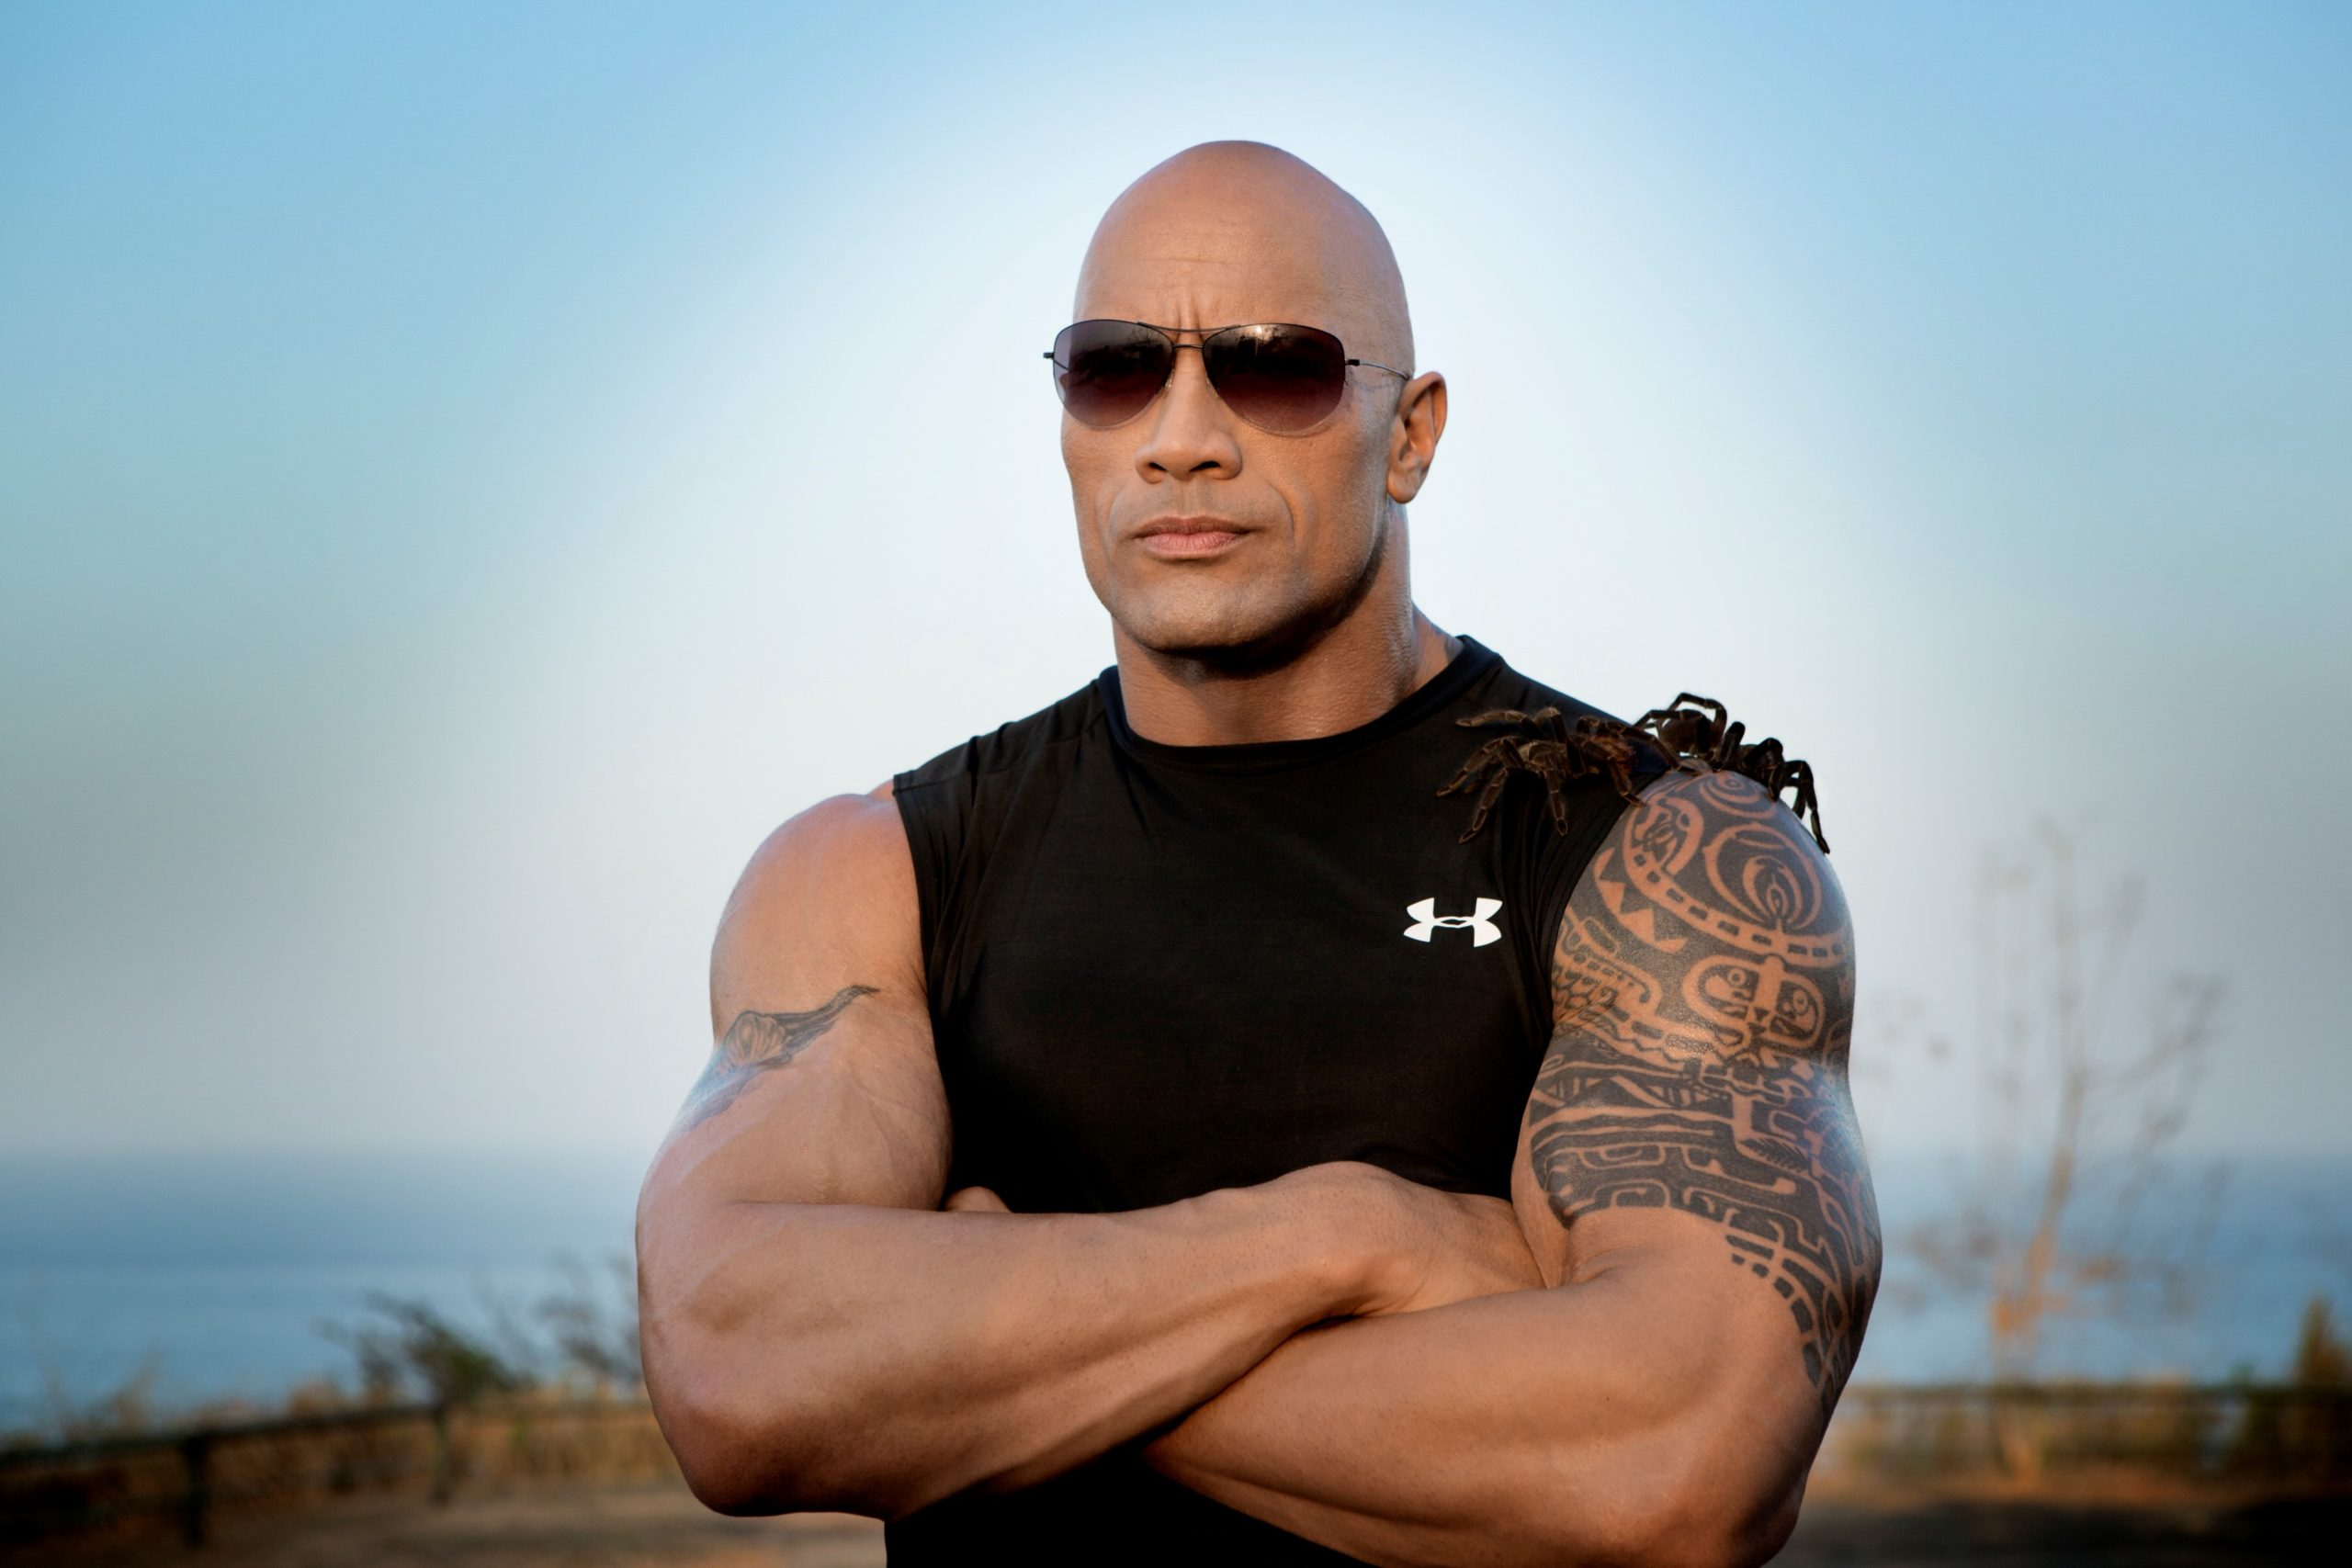 Dwayne Johnson Outside Pose scaled - Dwayne Johnson Net Worth, Pics, Wallpapers, Career and Biography